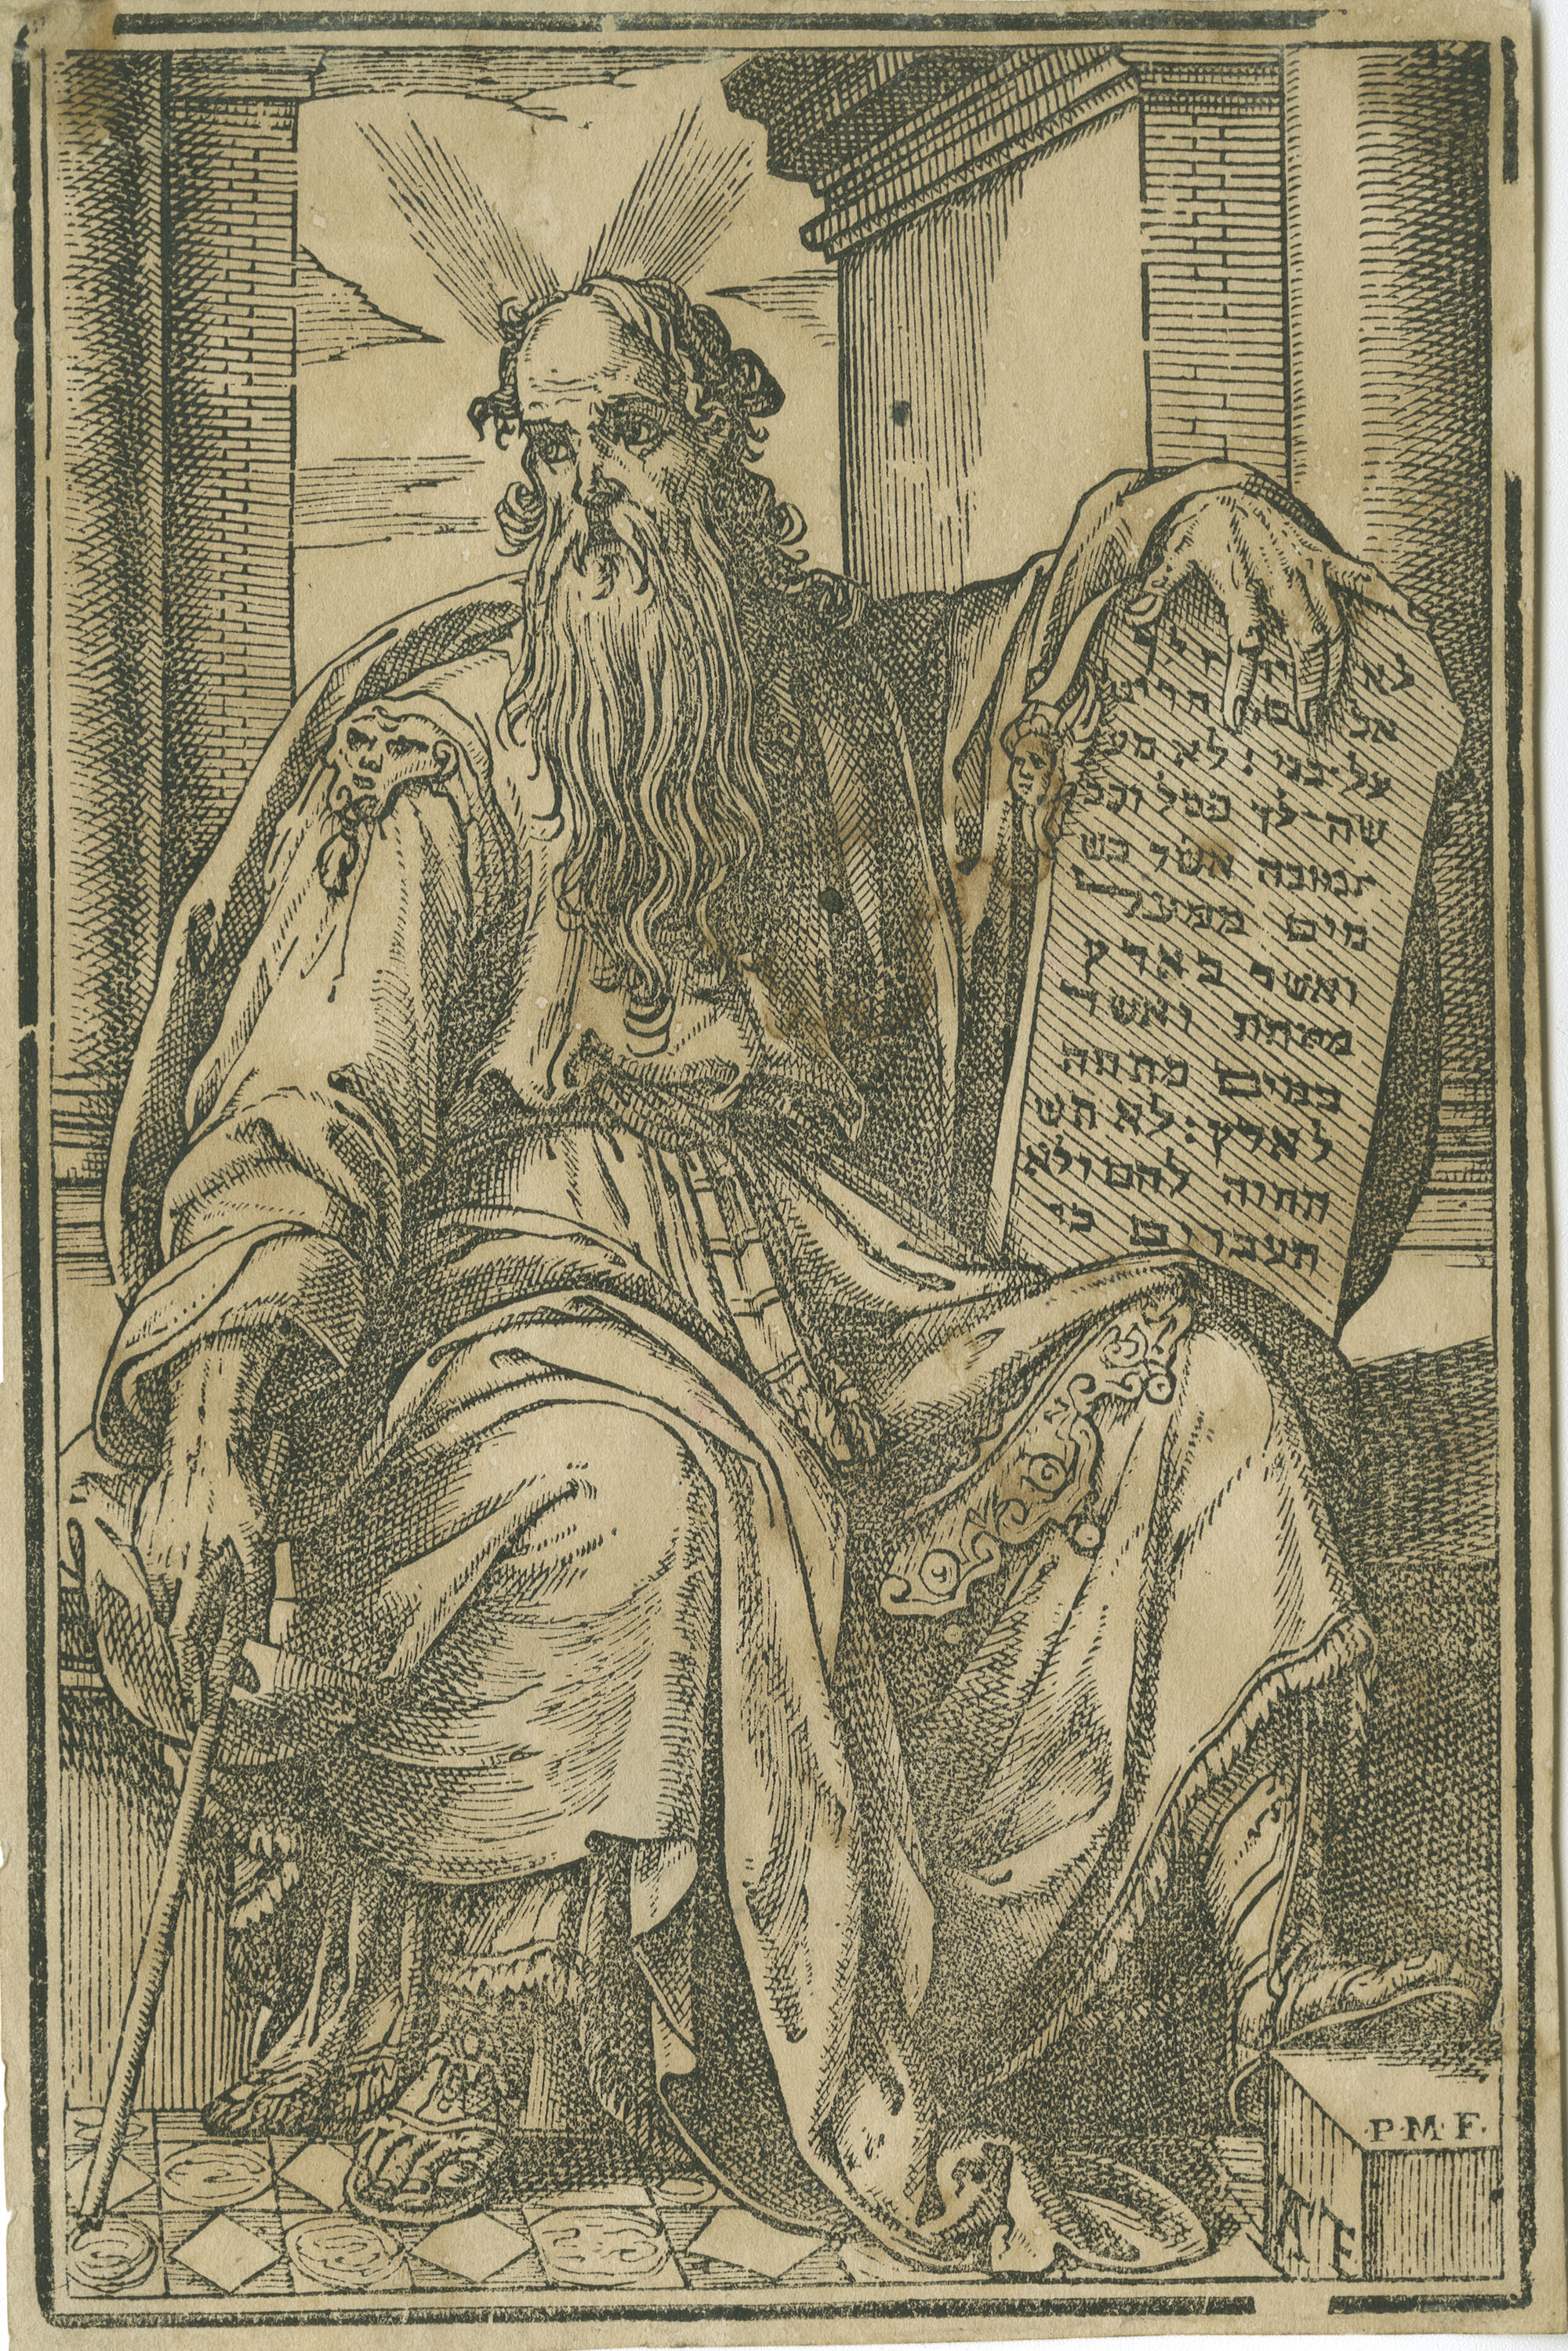 [Moses and the Ten Commandments]